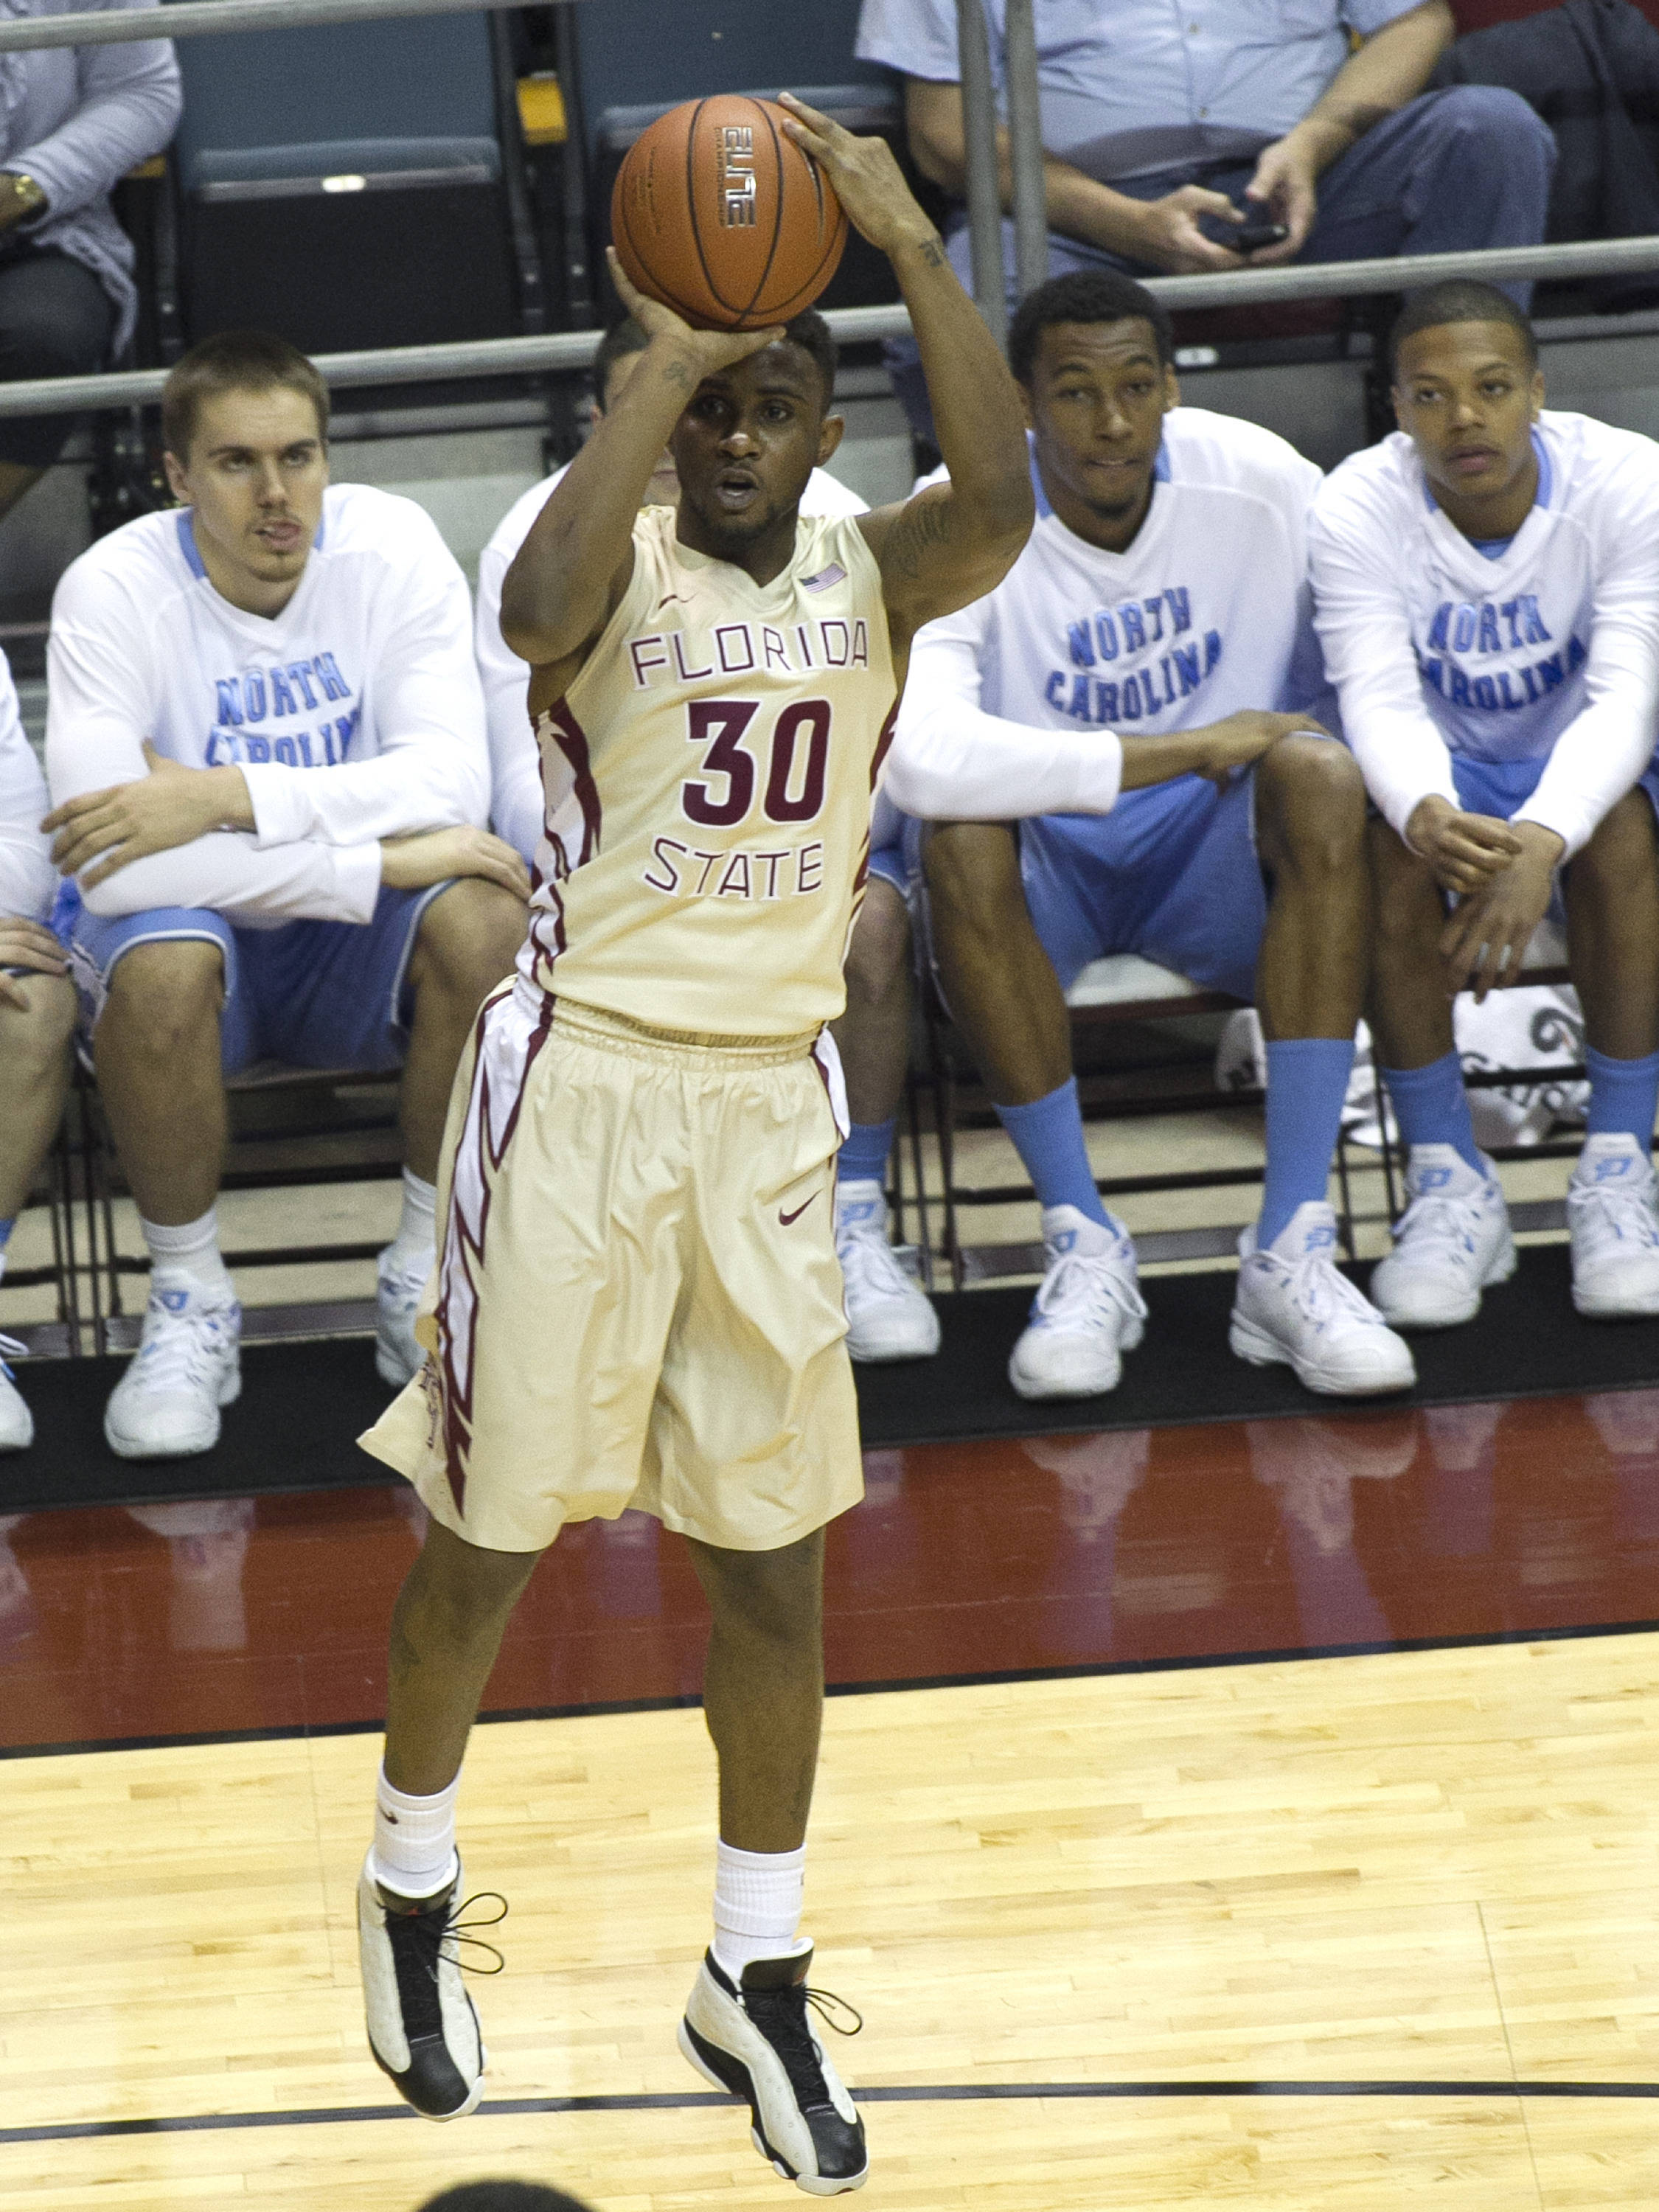 Ian Miller(30) with a jumper in front of the North Carolina bench, FSU vs North Carolina, 2-17-14, (Photo's by Steve Musco)